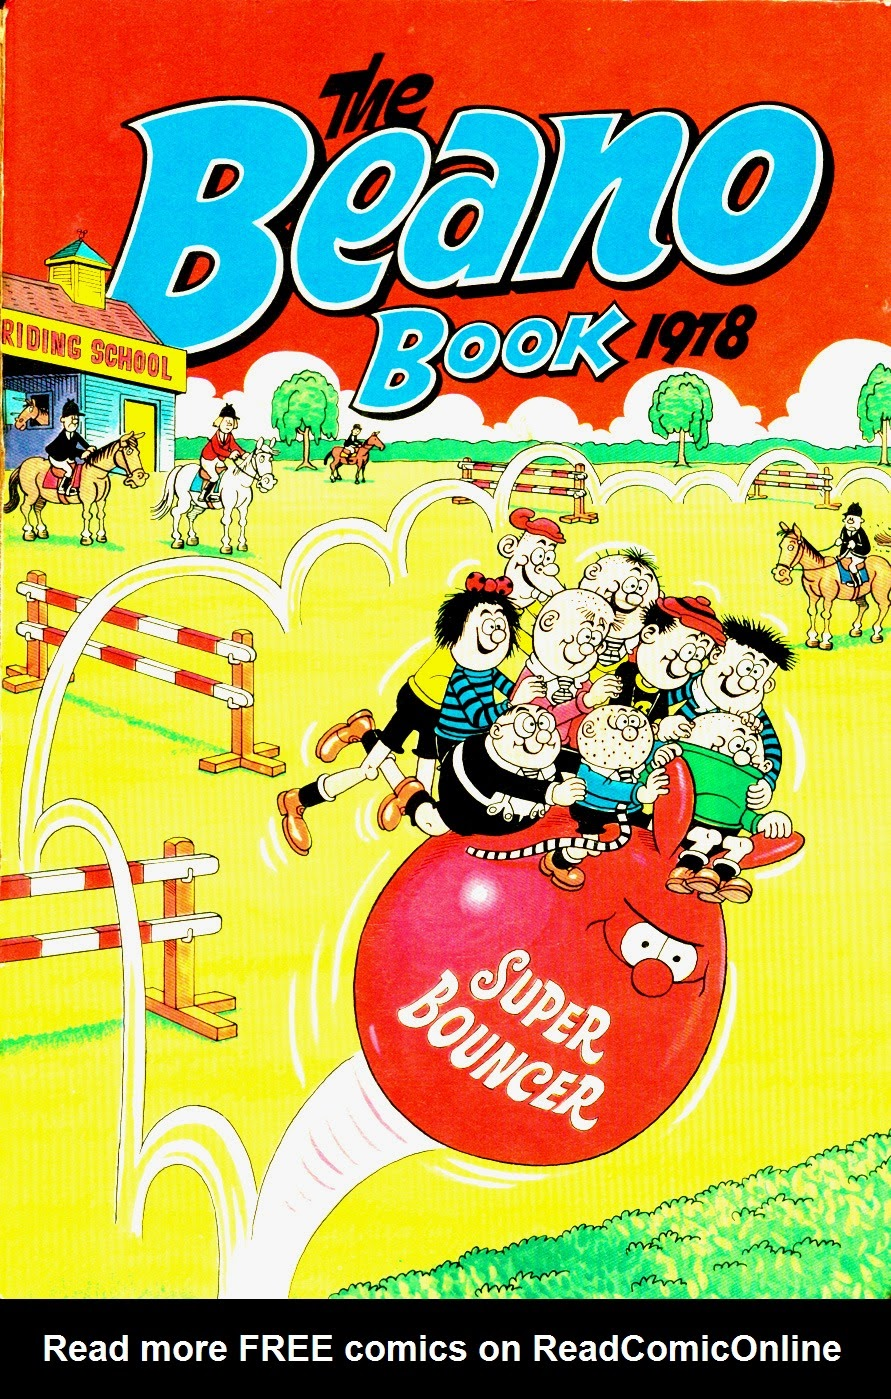 The Beano Book (Annual) 1978 Page 1